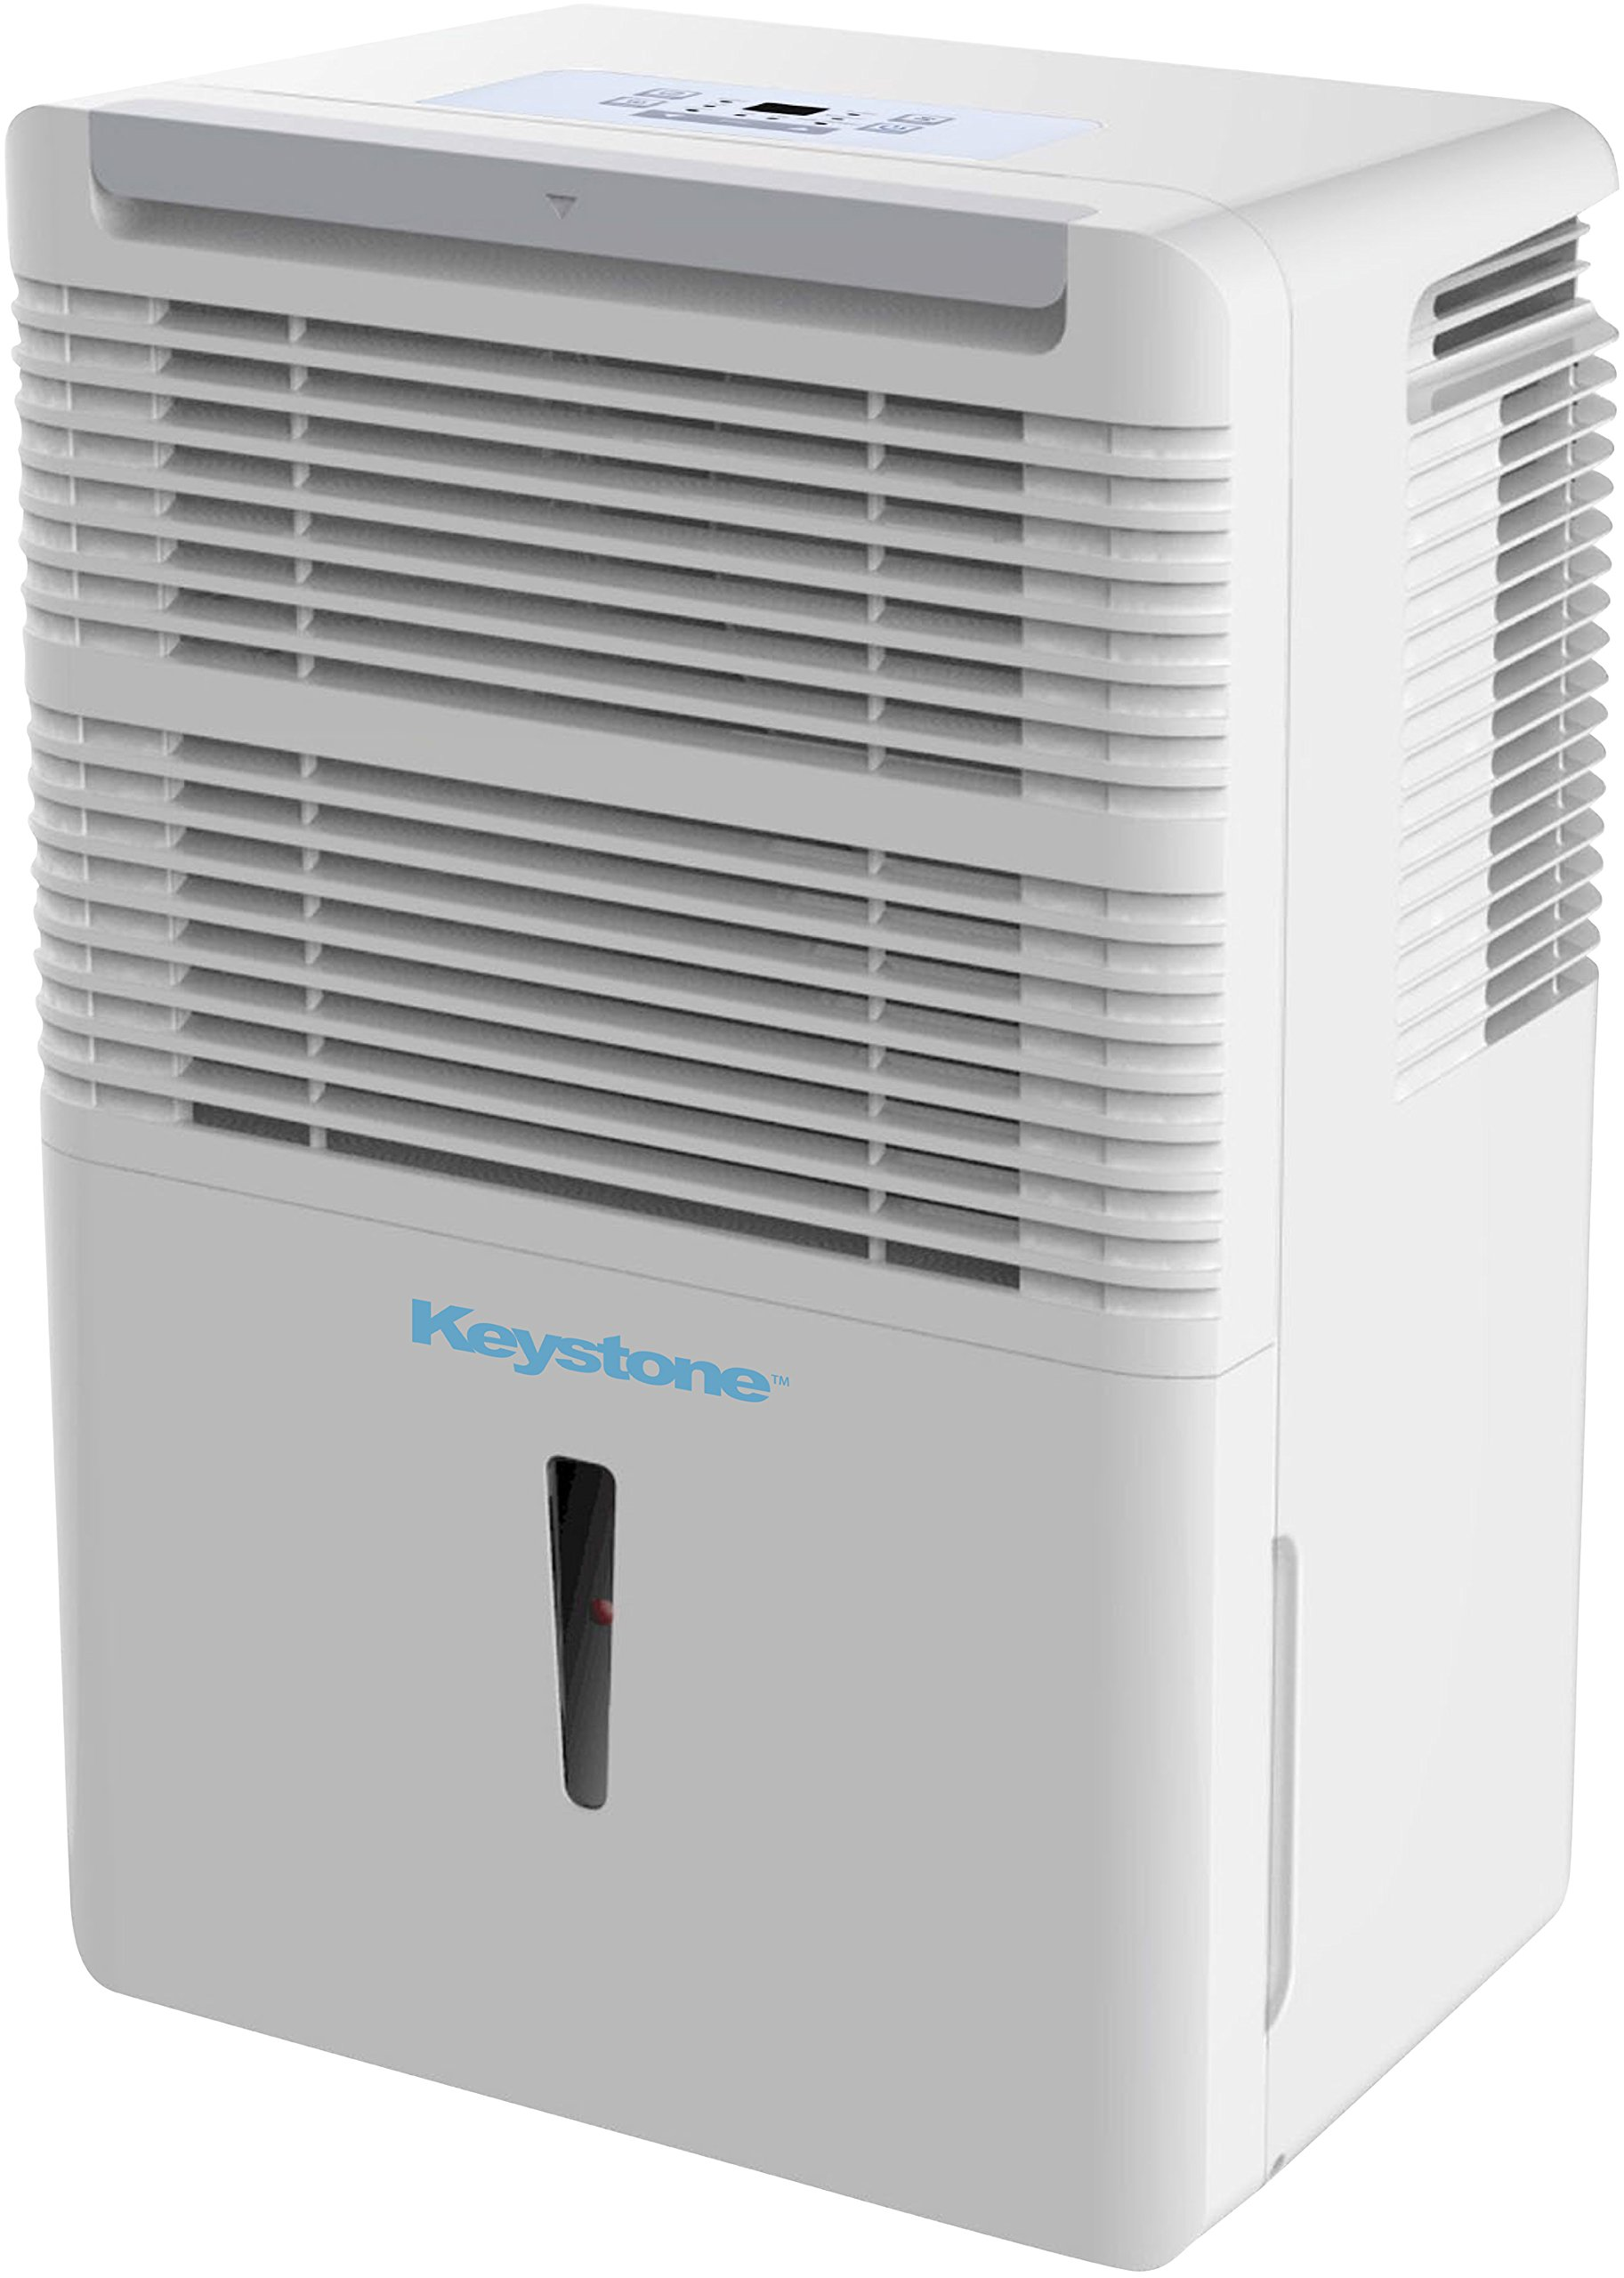 Keystone Energy Star 70 Portable Dehumidifier for 4500 Sq. Ft. with 12.8-Pint Capacity and Full Bucket Alert, White by Keystone